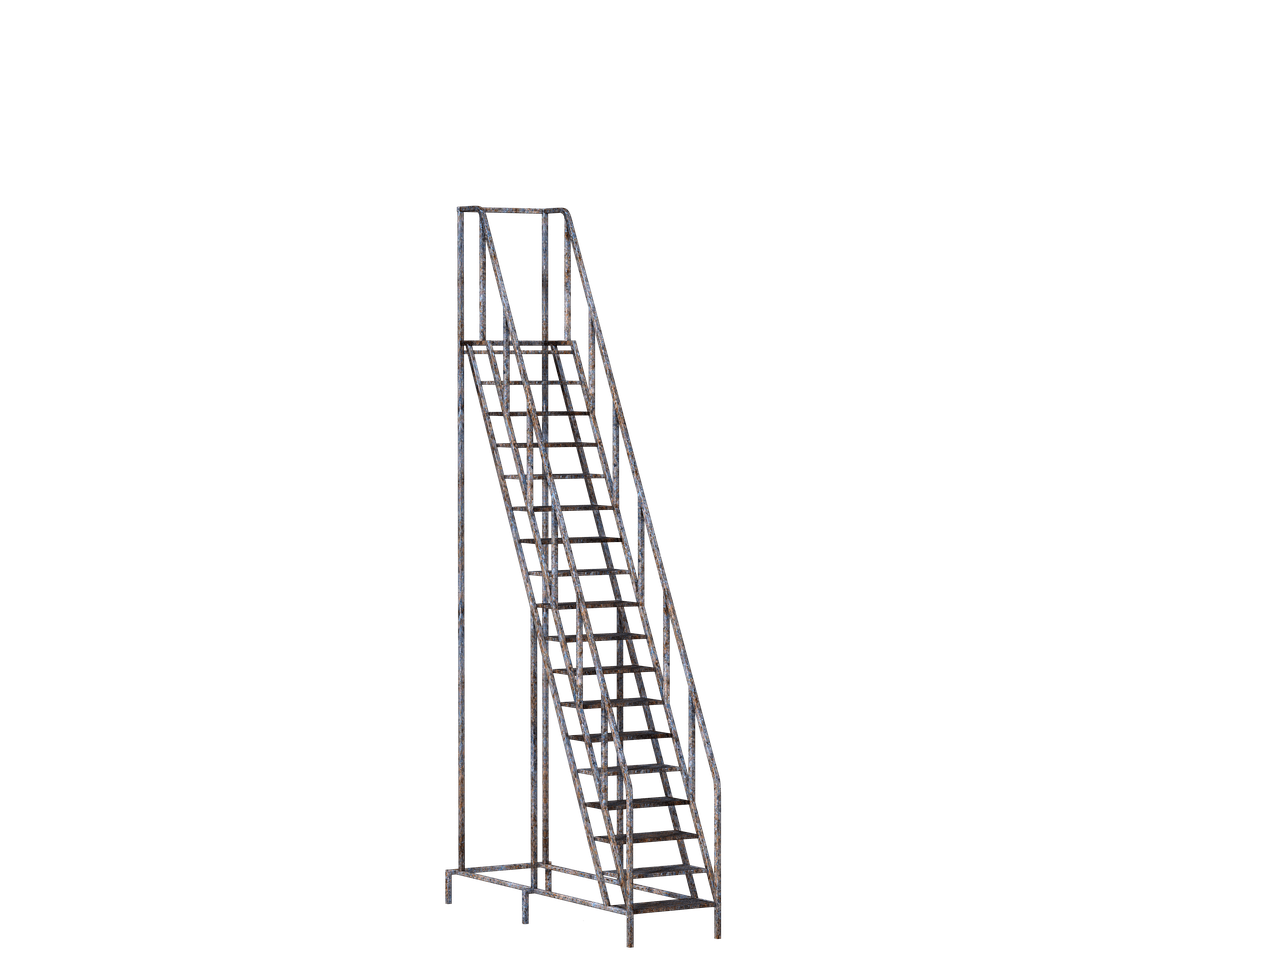 Metallic stick png. Stairs mobile transparent stickpng